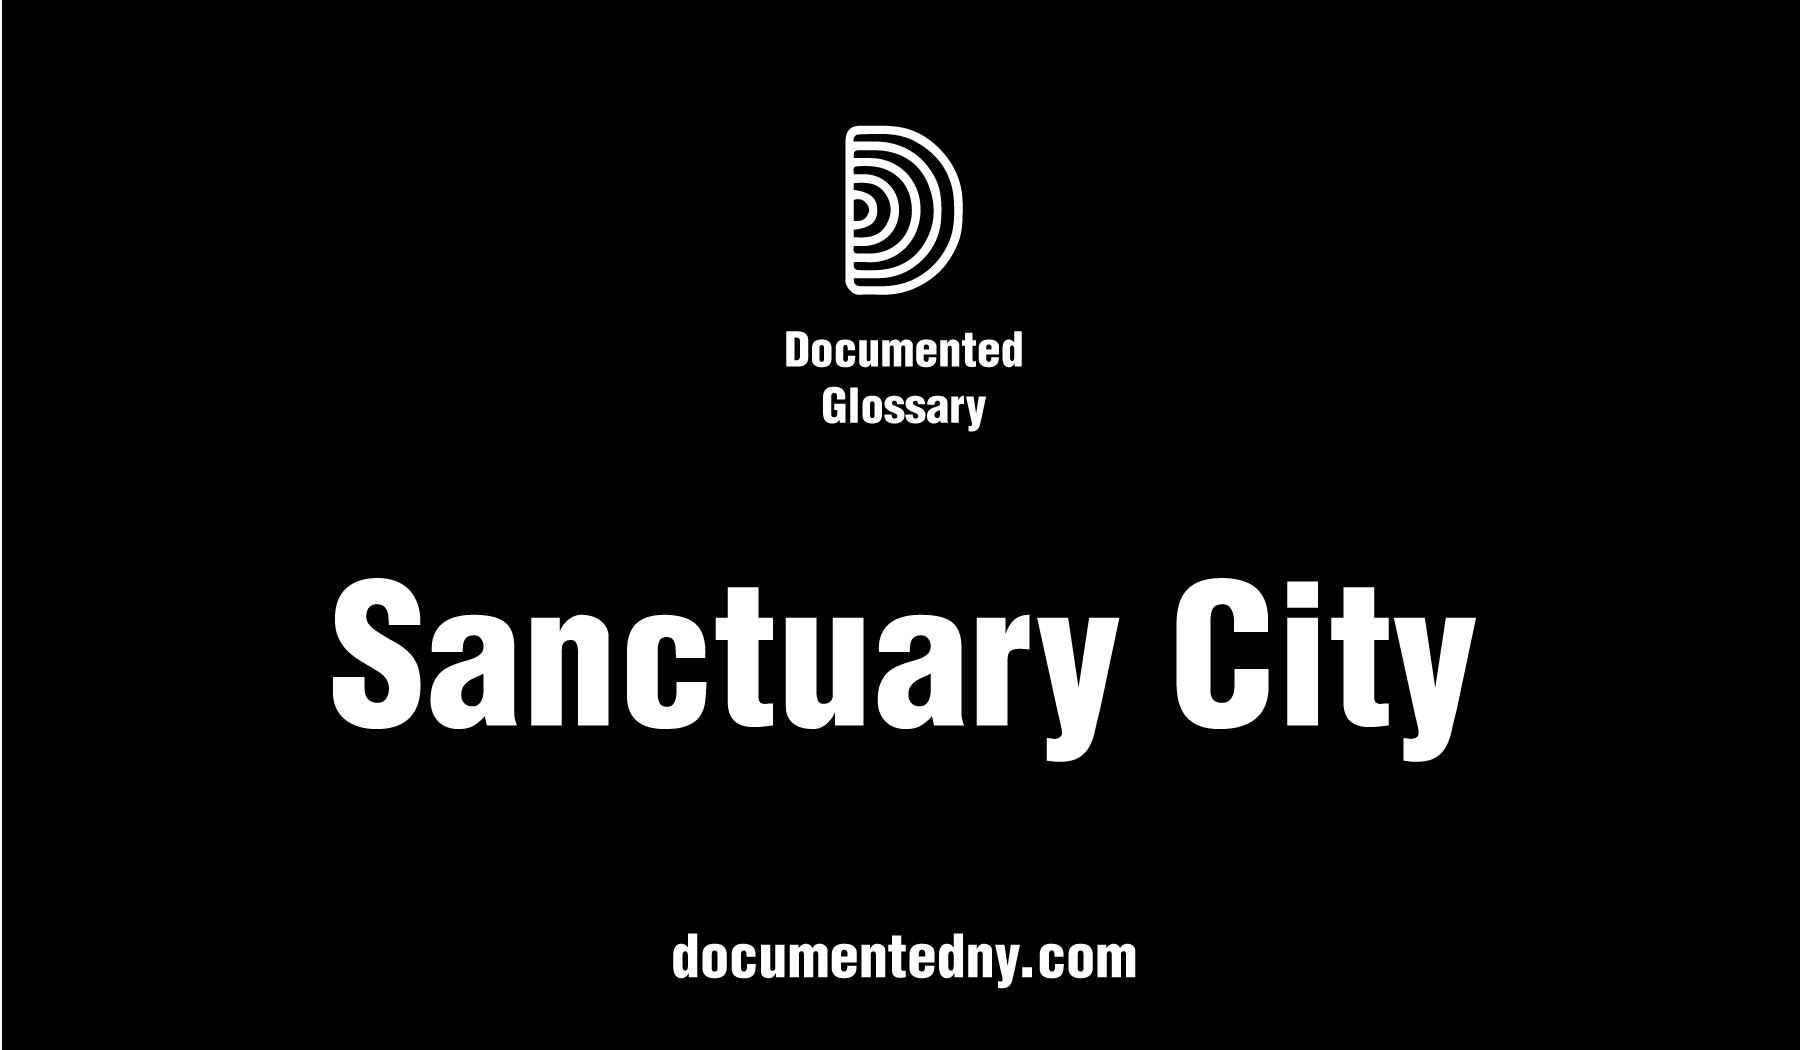 A city (or county or state) is considered a sanctuary when it has adopted policies designed to limit its cooperation with federal immigration enforcement agents to protect low-priority immigrants from deportation, while still turning over those who have committed serious crimes.